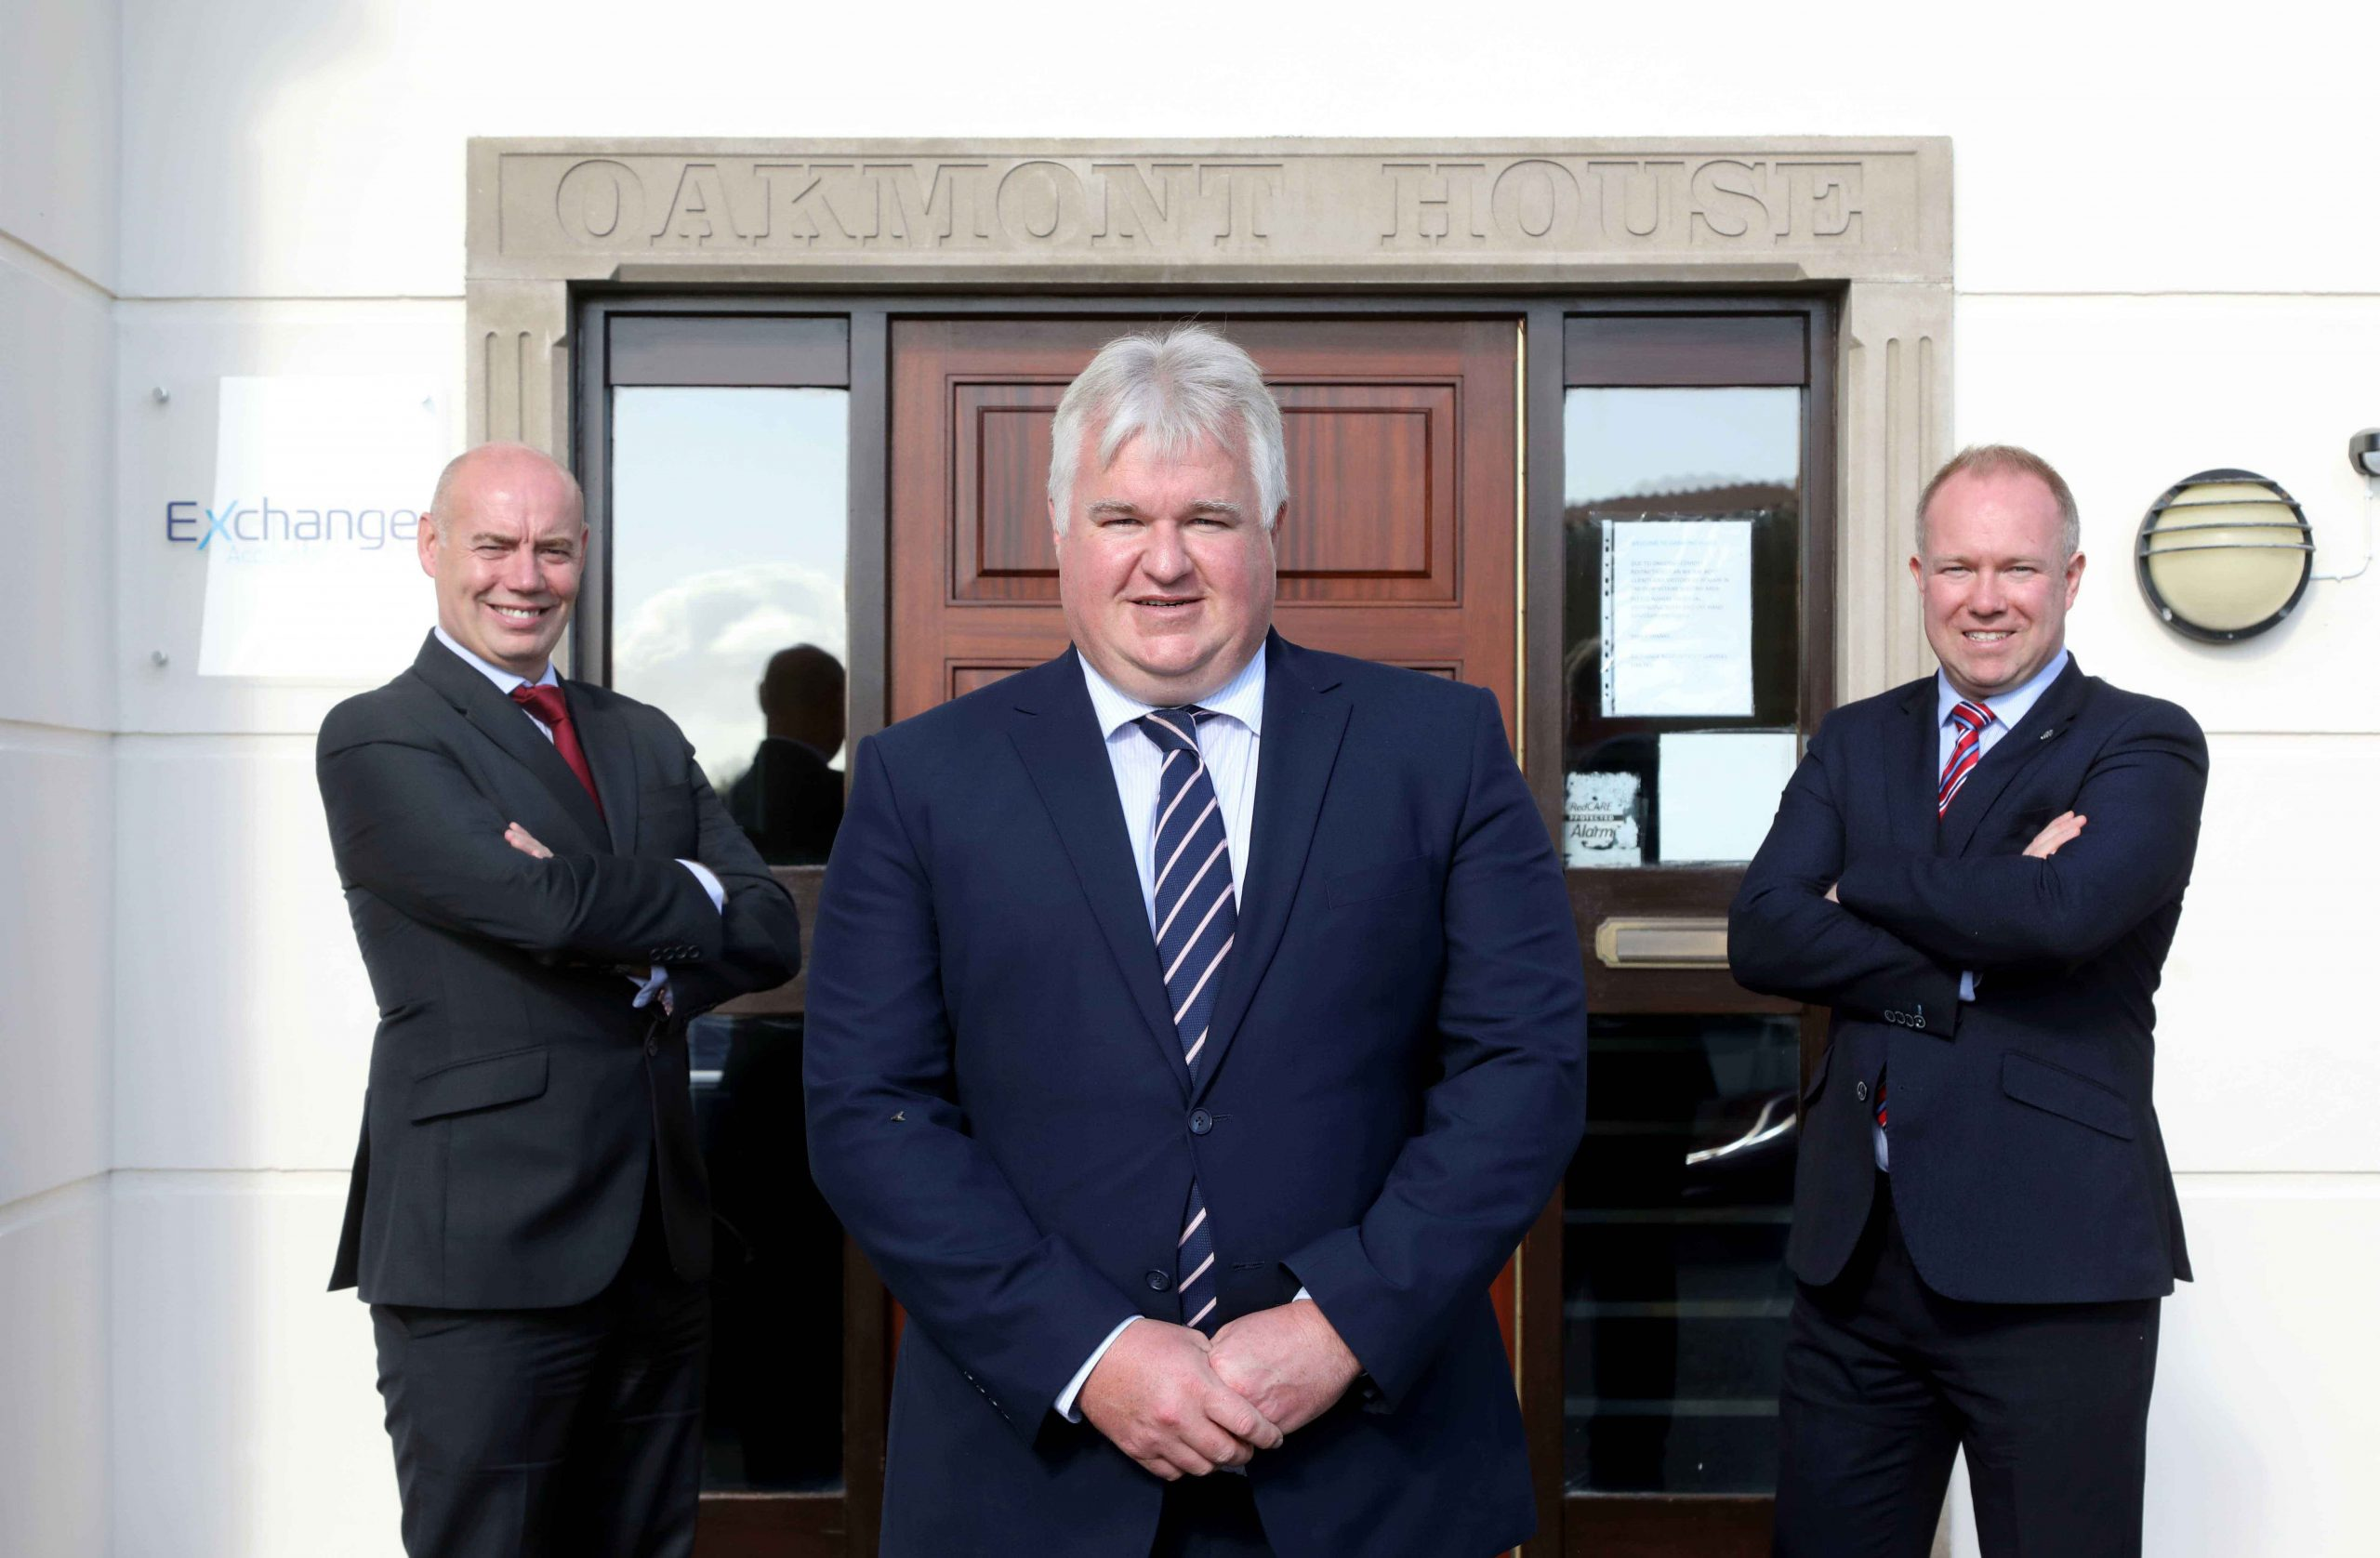 NEW DECADE, NEW DAWN, NEW OFFICES: One of Northern Ireland's leading digital accountancy specialists Exchange Accountants is looking forward to a 'new era' in fresh new offices as it celebrates a significant company milestone. Exchange Accountants was established in Belfast in September 2011 by founding directors William Gould (centre), Conor Walls (left) and Gary Laverty (right), who will be cutting the company's 10th birthday cake this month in new headquarters at Oakmont House in Lisburn. The past 10 years has seen the company build its reputation in the field of digital accounting, having become the first accountancy practice in Northern Ireland to be recognized as a Xero Gold Partner, and more recently achieving Platinum Partner status with the market-leading cloud accountancy software provider. Following a merger last year, in which Fitzmaurice McConville & Co became part of the expanding Exchange Accountants portfolio, the company made the decision to re-locate its operations into new rebranded and refurbished premises in Lisburn. The Covid-19 pandemic saw staff work predominantly from home but now, as restrictions ease, the new offices are fully operational and the future is looking bright for Exchange, which employs a team of 15 staff to look after a growing client base of more than 1,000. Established in 2011, Exchange Accountants provides premier accountancy services and tax advice to a wide variety of locally based SMEs and individuals. For more information on the digital accountancy services it provides, click on www.exchangeaccountants.com, call 028 9263 4135 or send an email to info@exchangeaccountants.com.